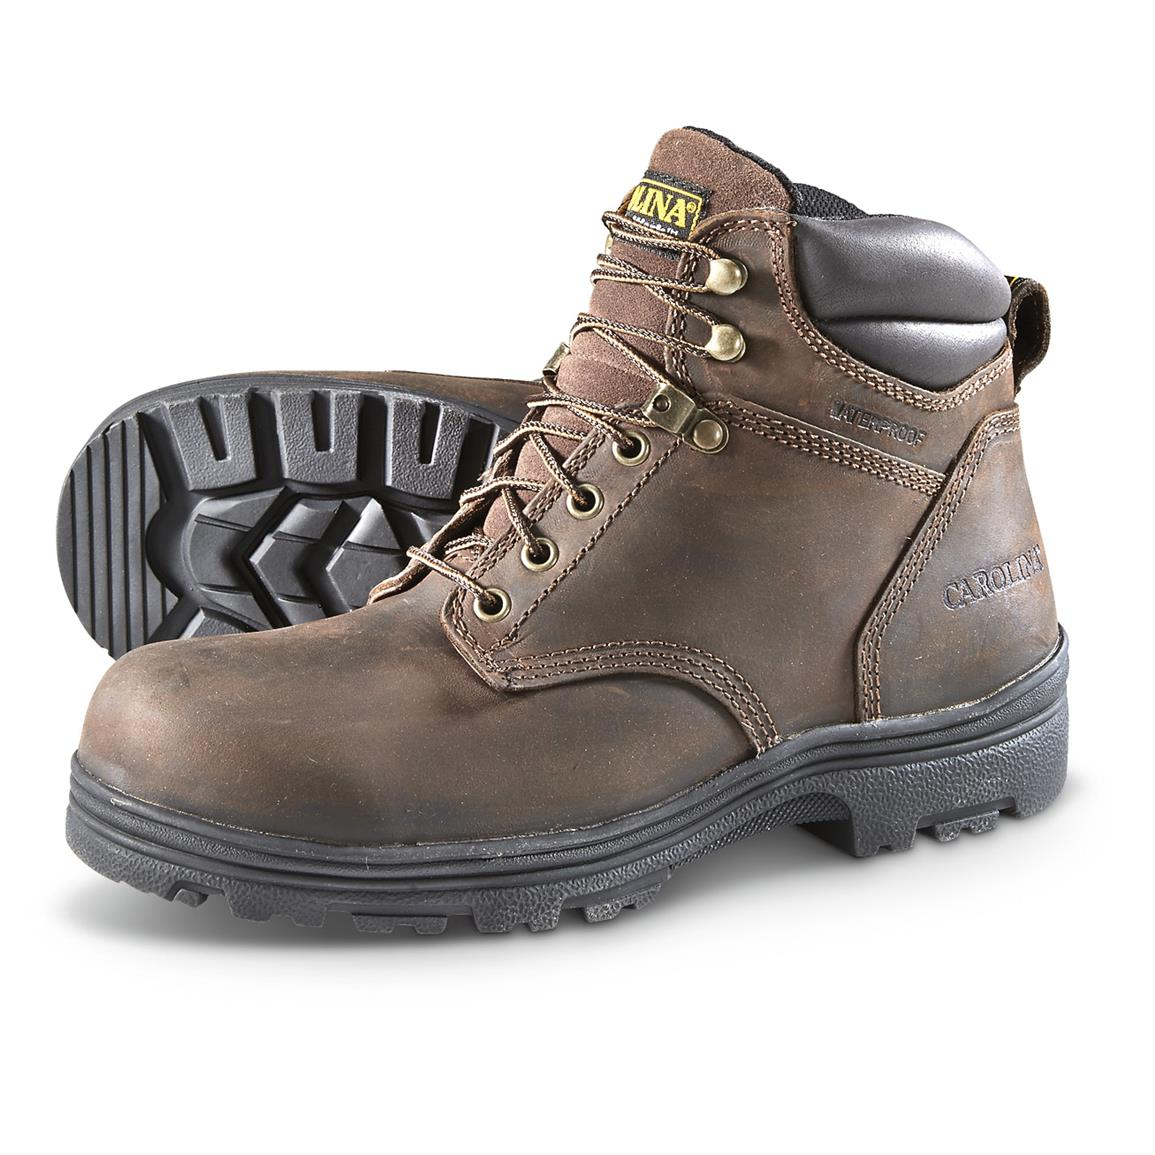 164bec6d2dc Carolina Men's Engineer Waterproof Work Boots